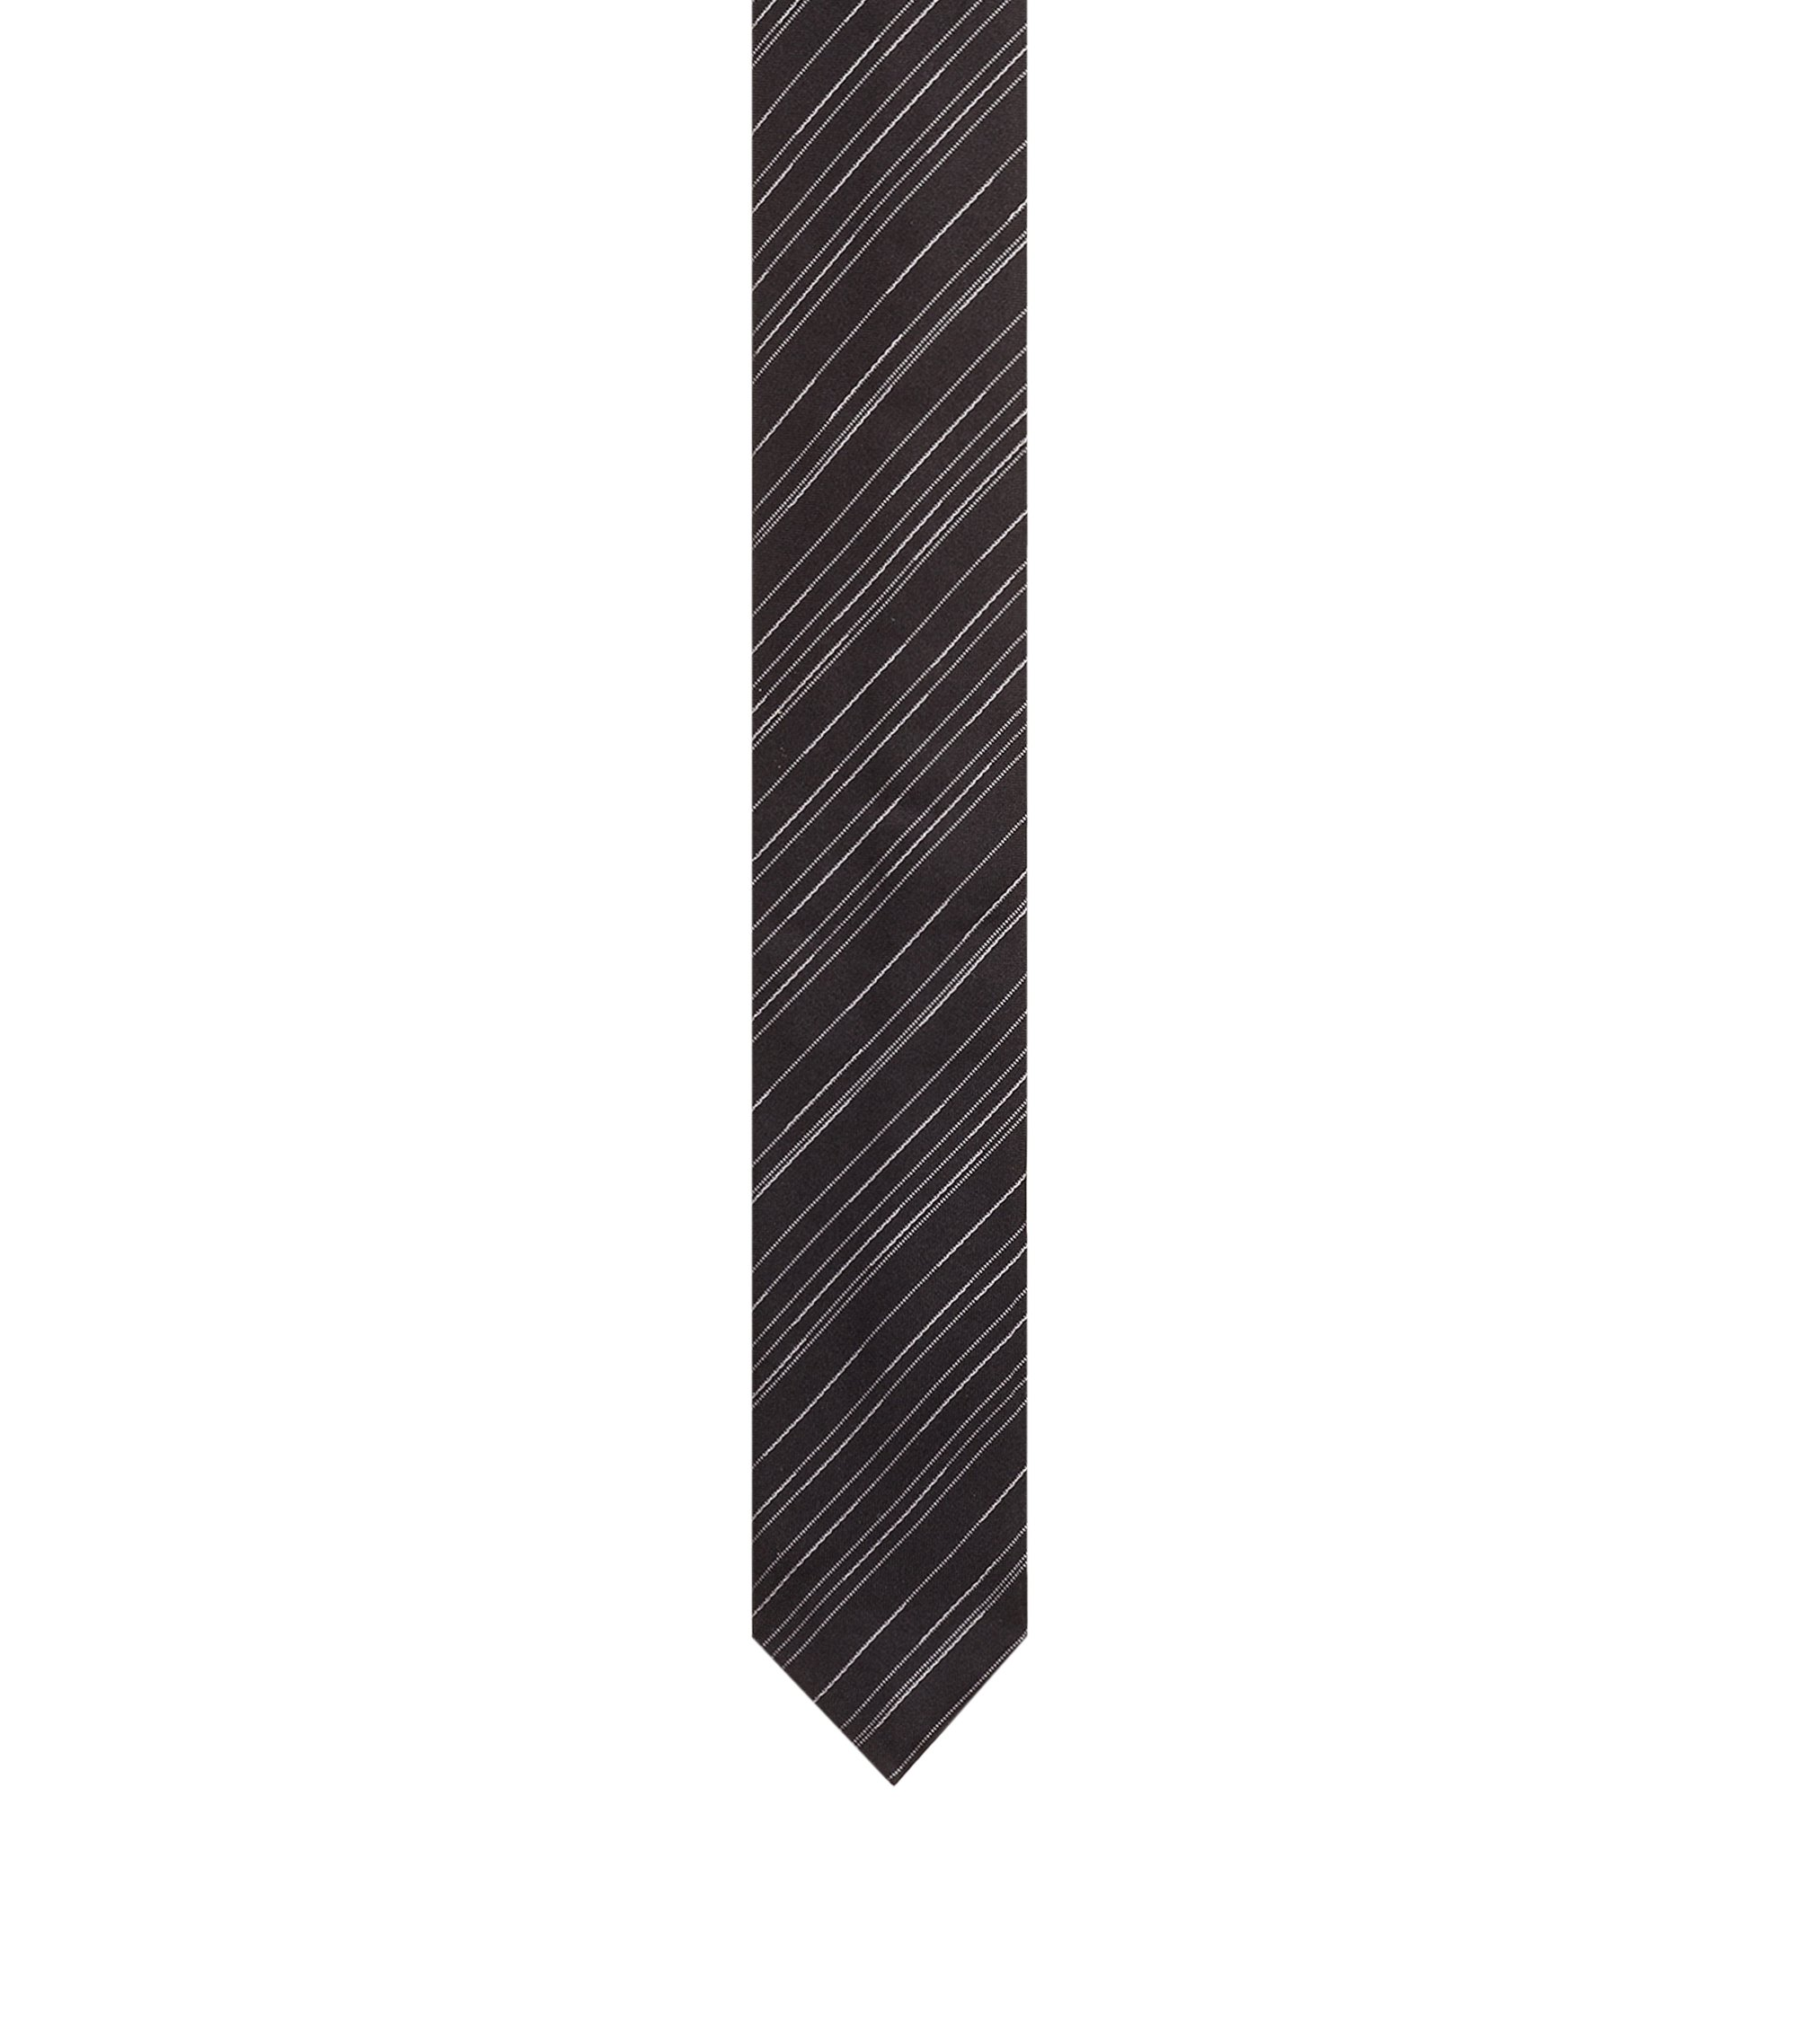 Slimline tie in silk jacquard with diagonal stripes, Black